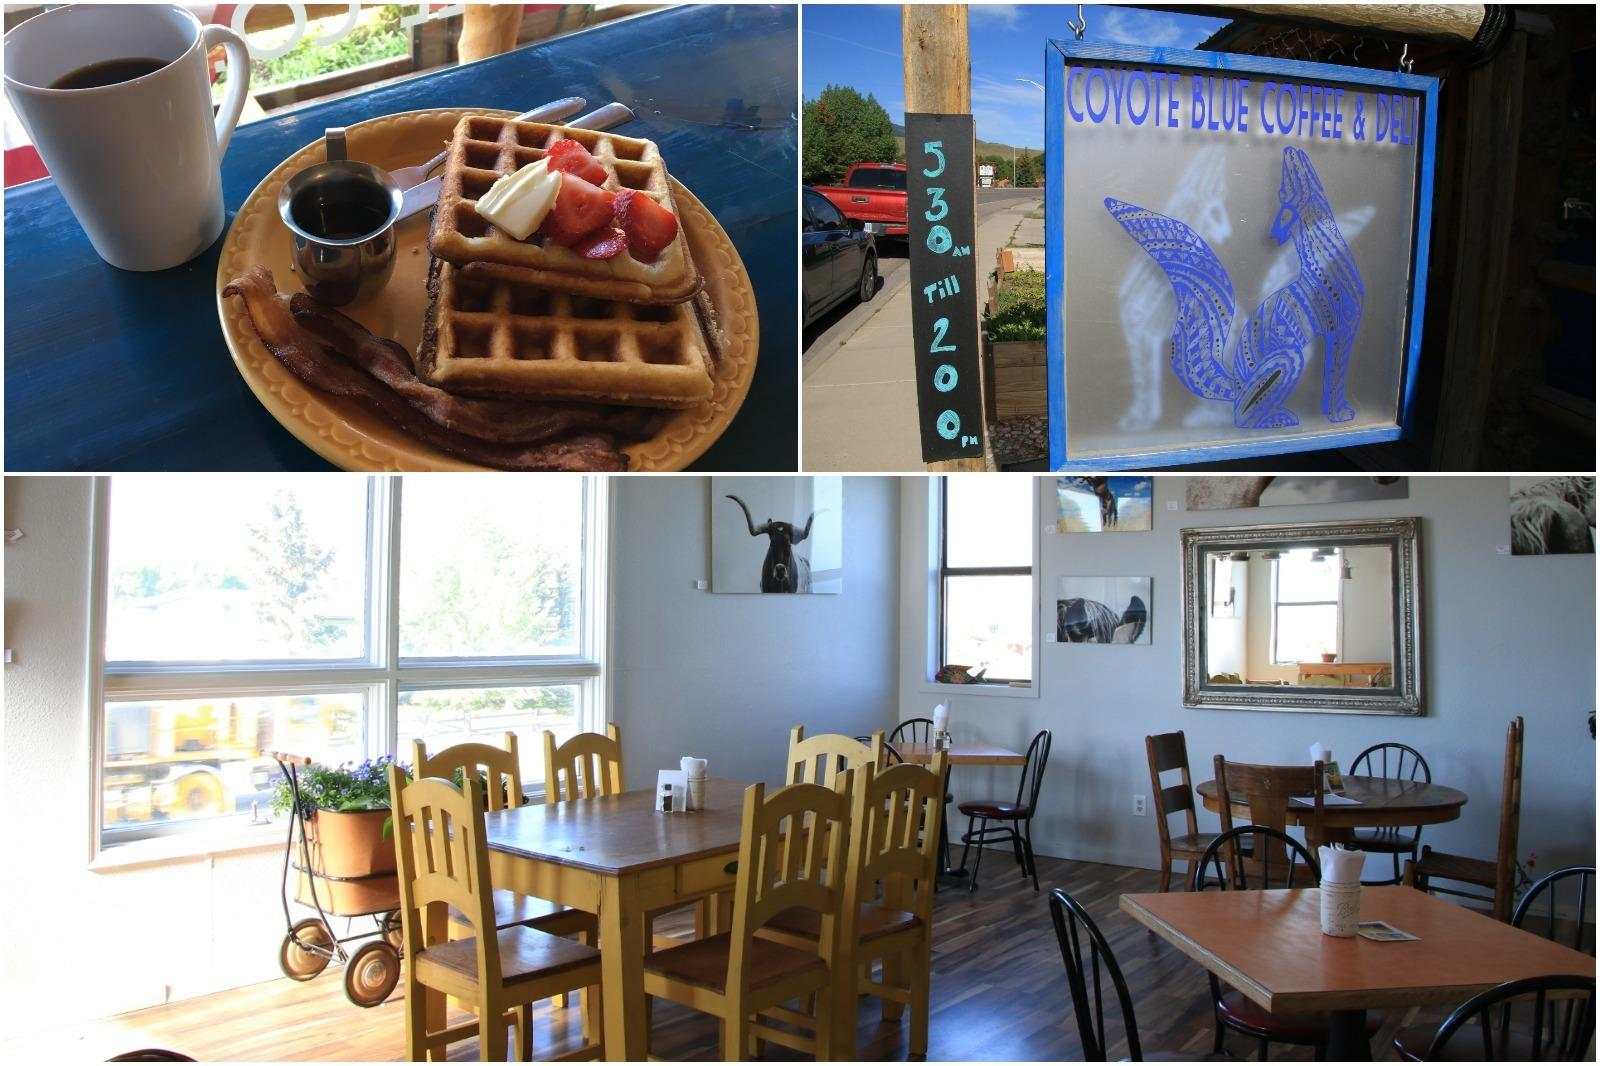 Photos of food and the atmosphere in Coyote Blue Coffee & Deli